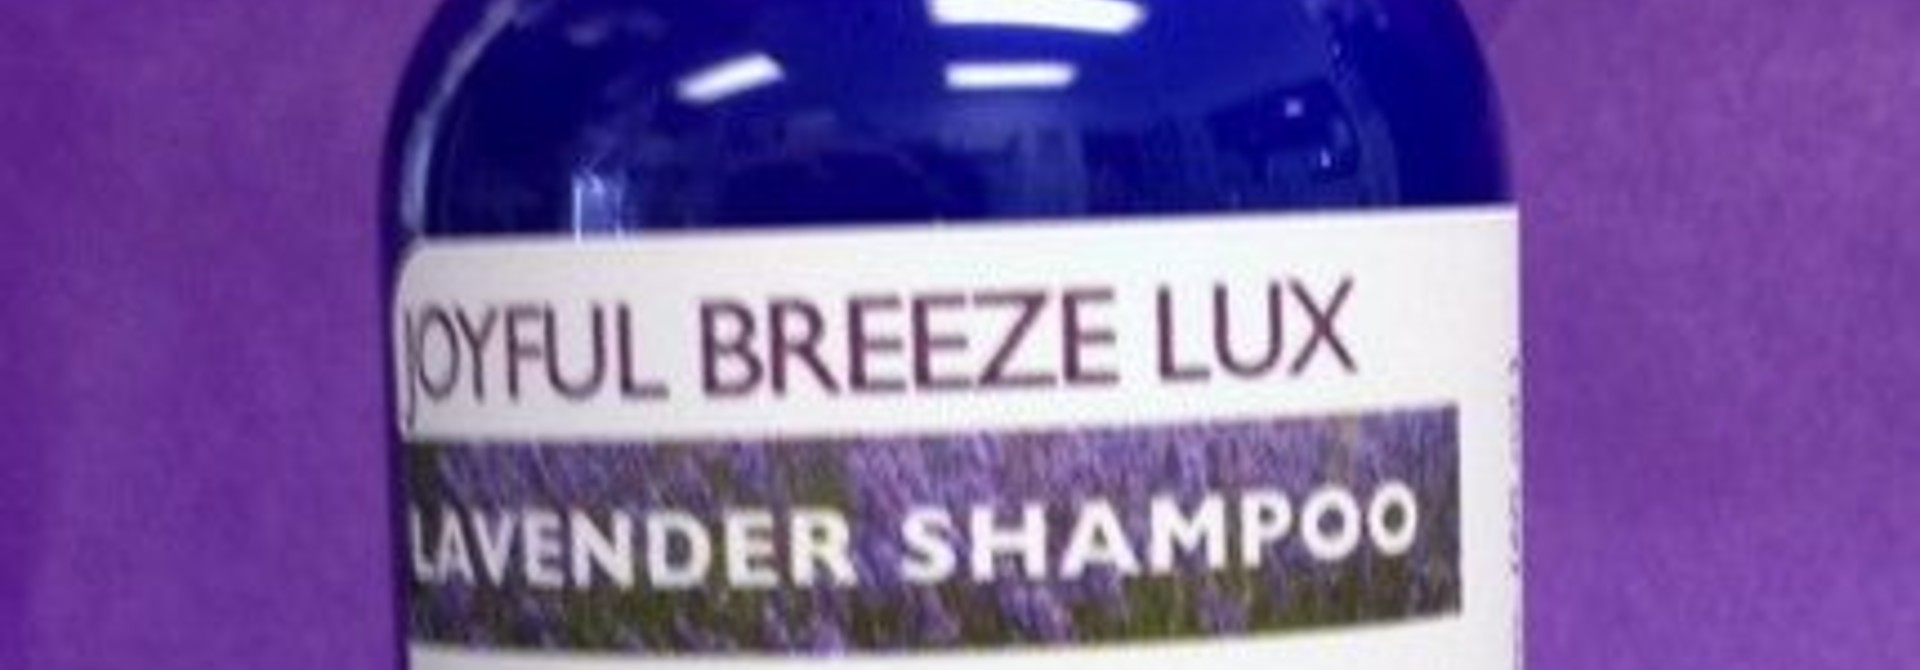 Joyful Breeze LUX Lavender Shampoo - 2 oz